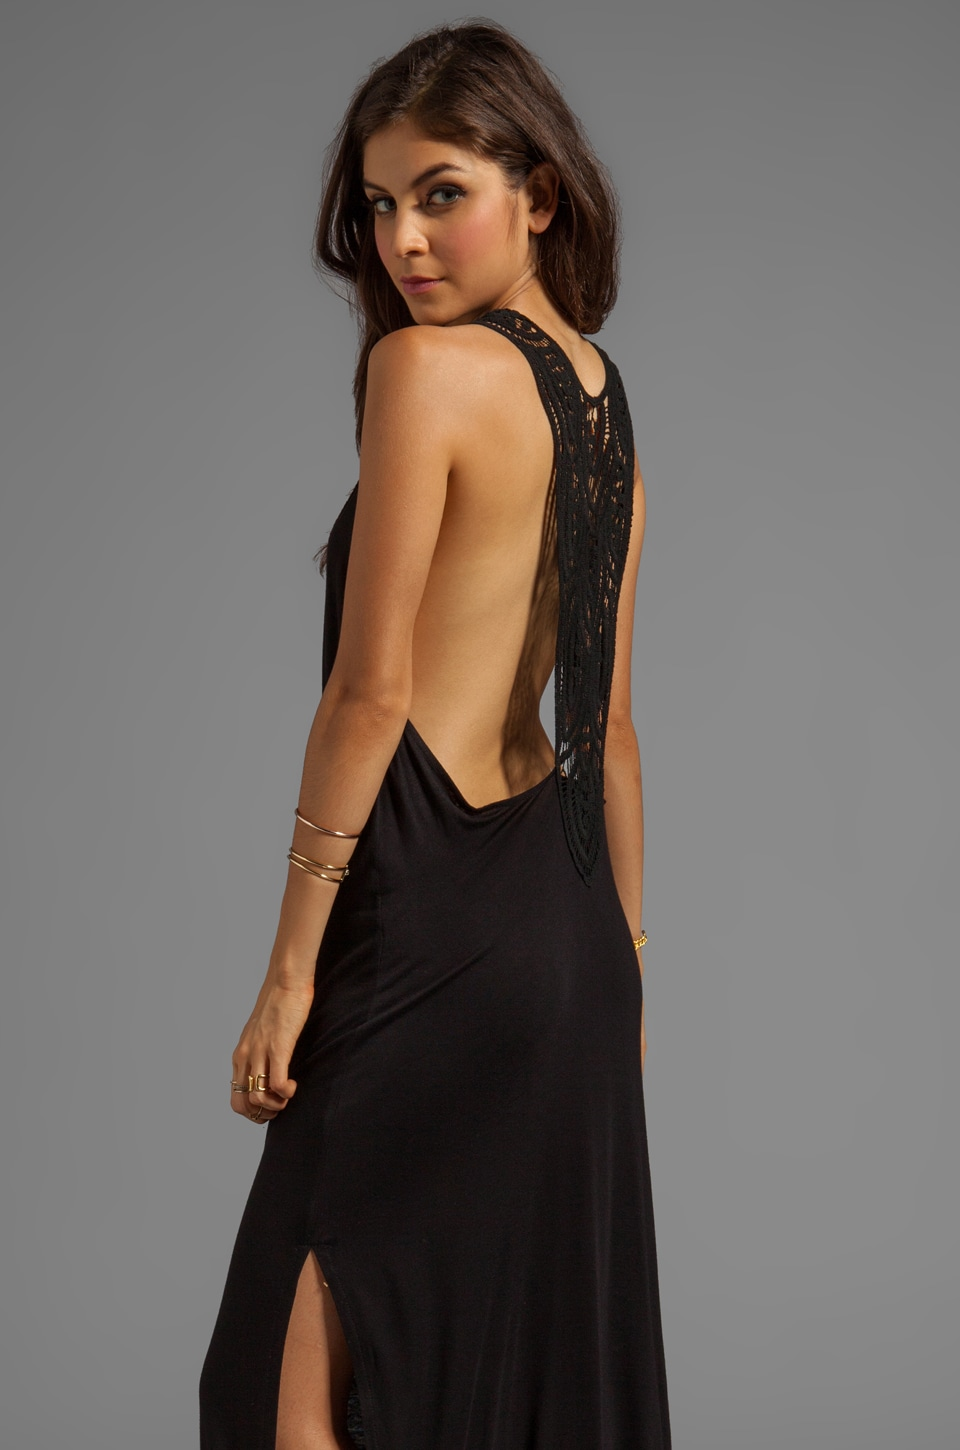 Jen's Pirate Booty Hallelujah Jersey Gown in Negro/Black Crochet